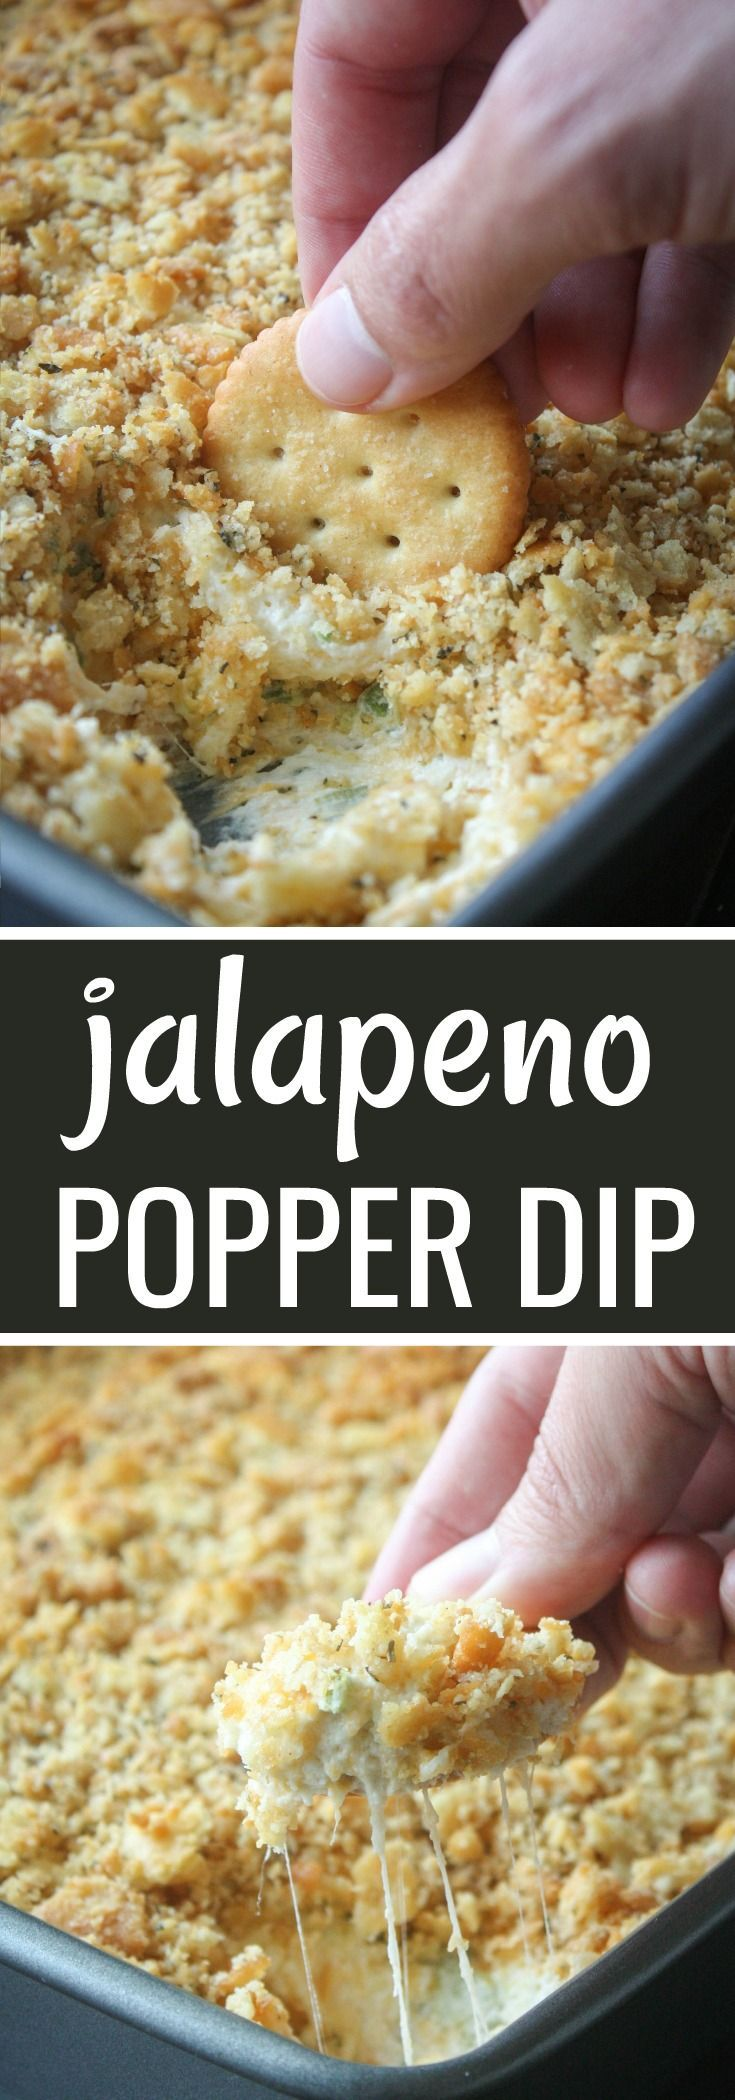 Super Cheesy Jalapeno Popper Dip with Ritz Crackers Crumb Topping for a buttery crunch. Serve with Ritz Crackers, Fritos or Tortilla Chips. #cheesydips #cheesedips #jalapenopopperdip